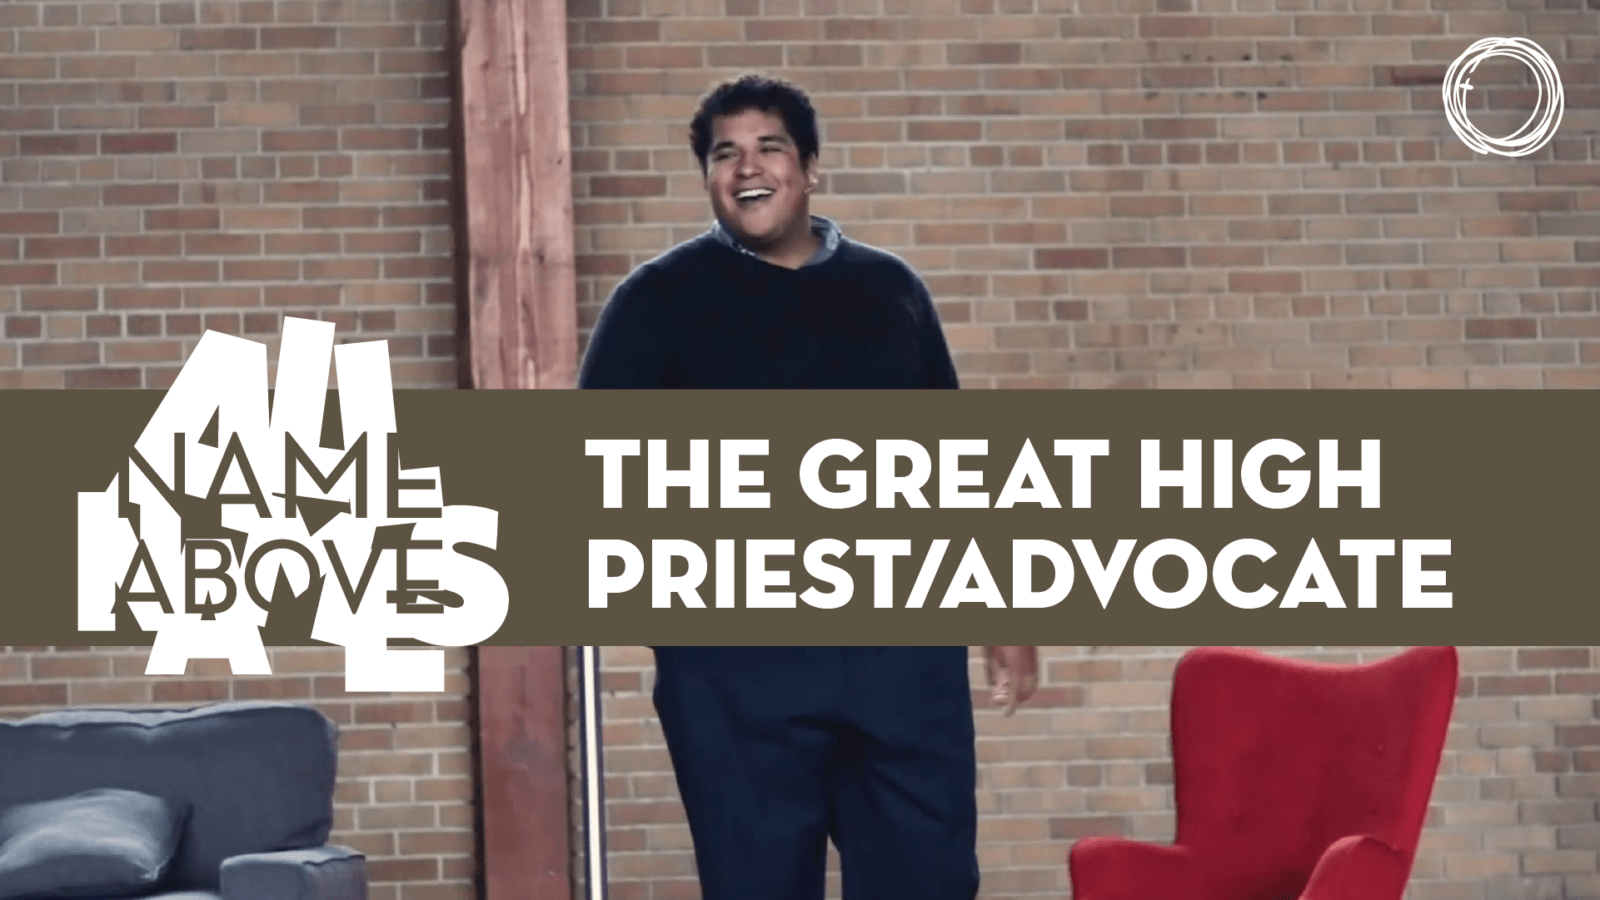 The Great High Priest/Advocate